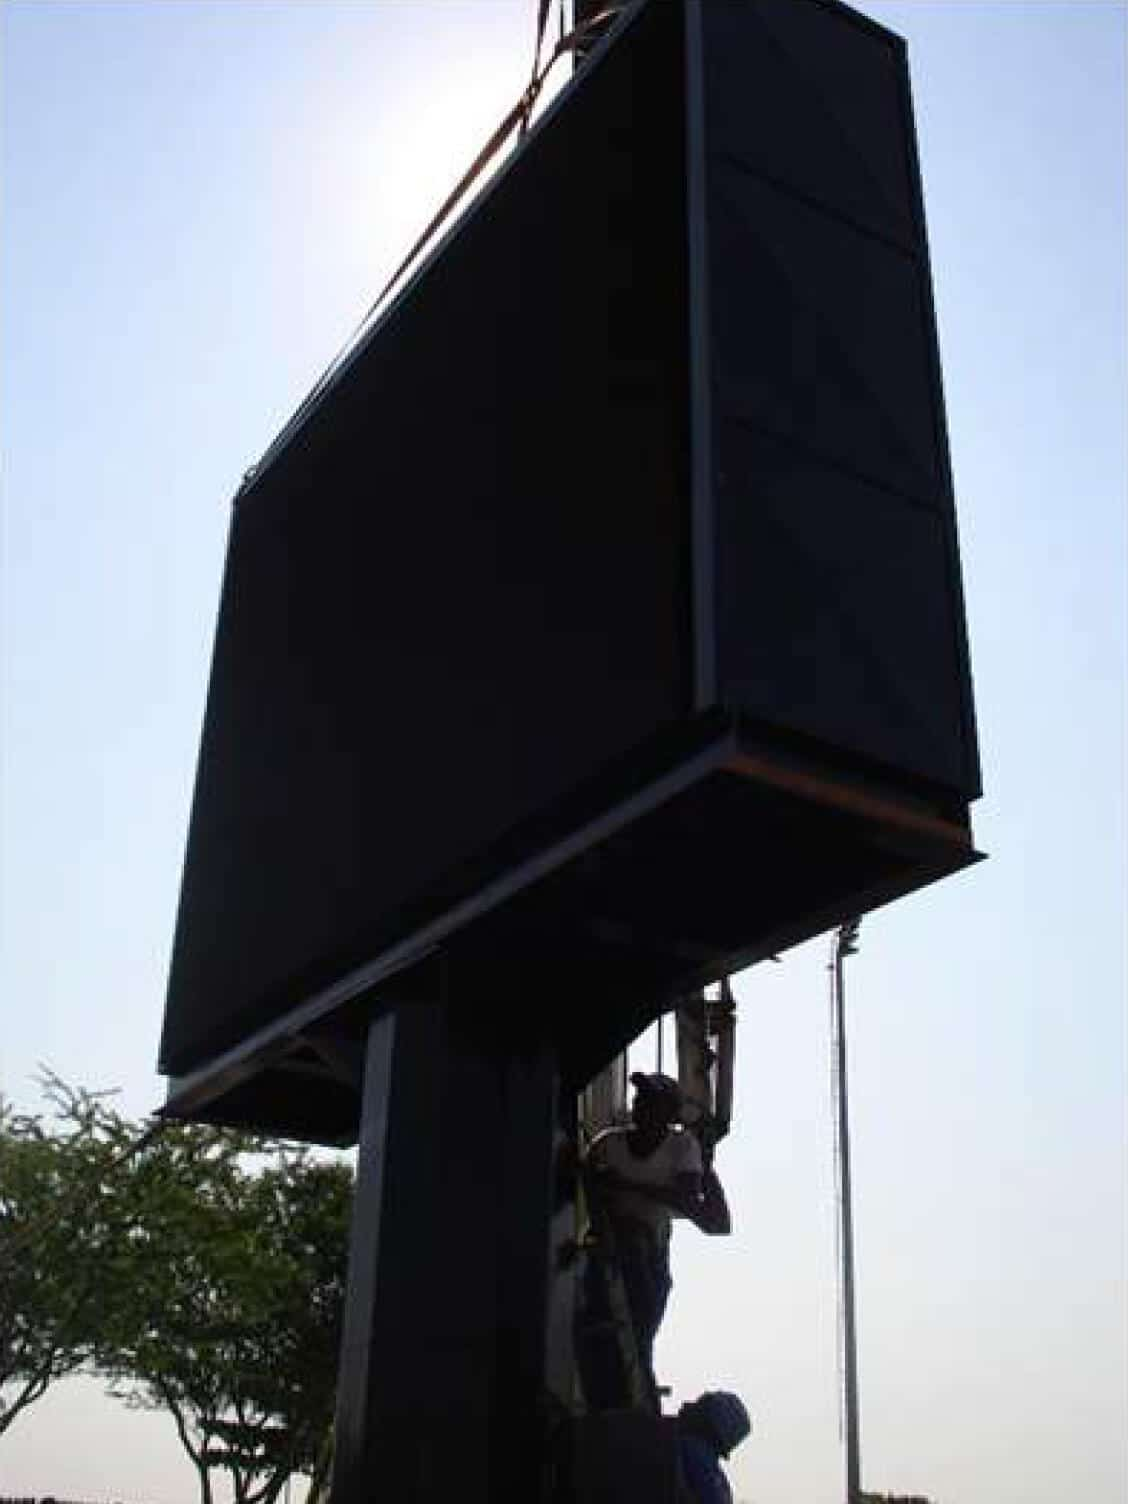 LED-billboard-CONSTRUCTION-PROCESS-14